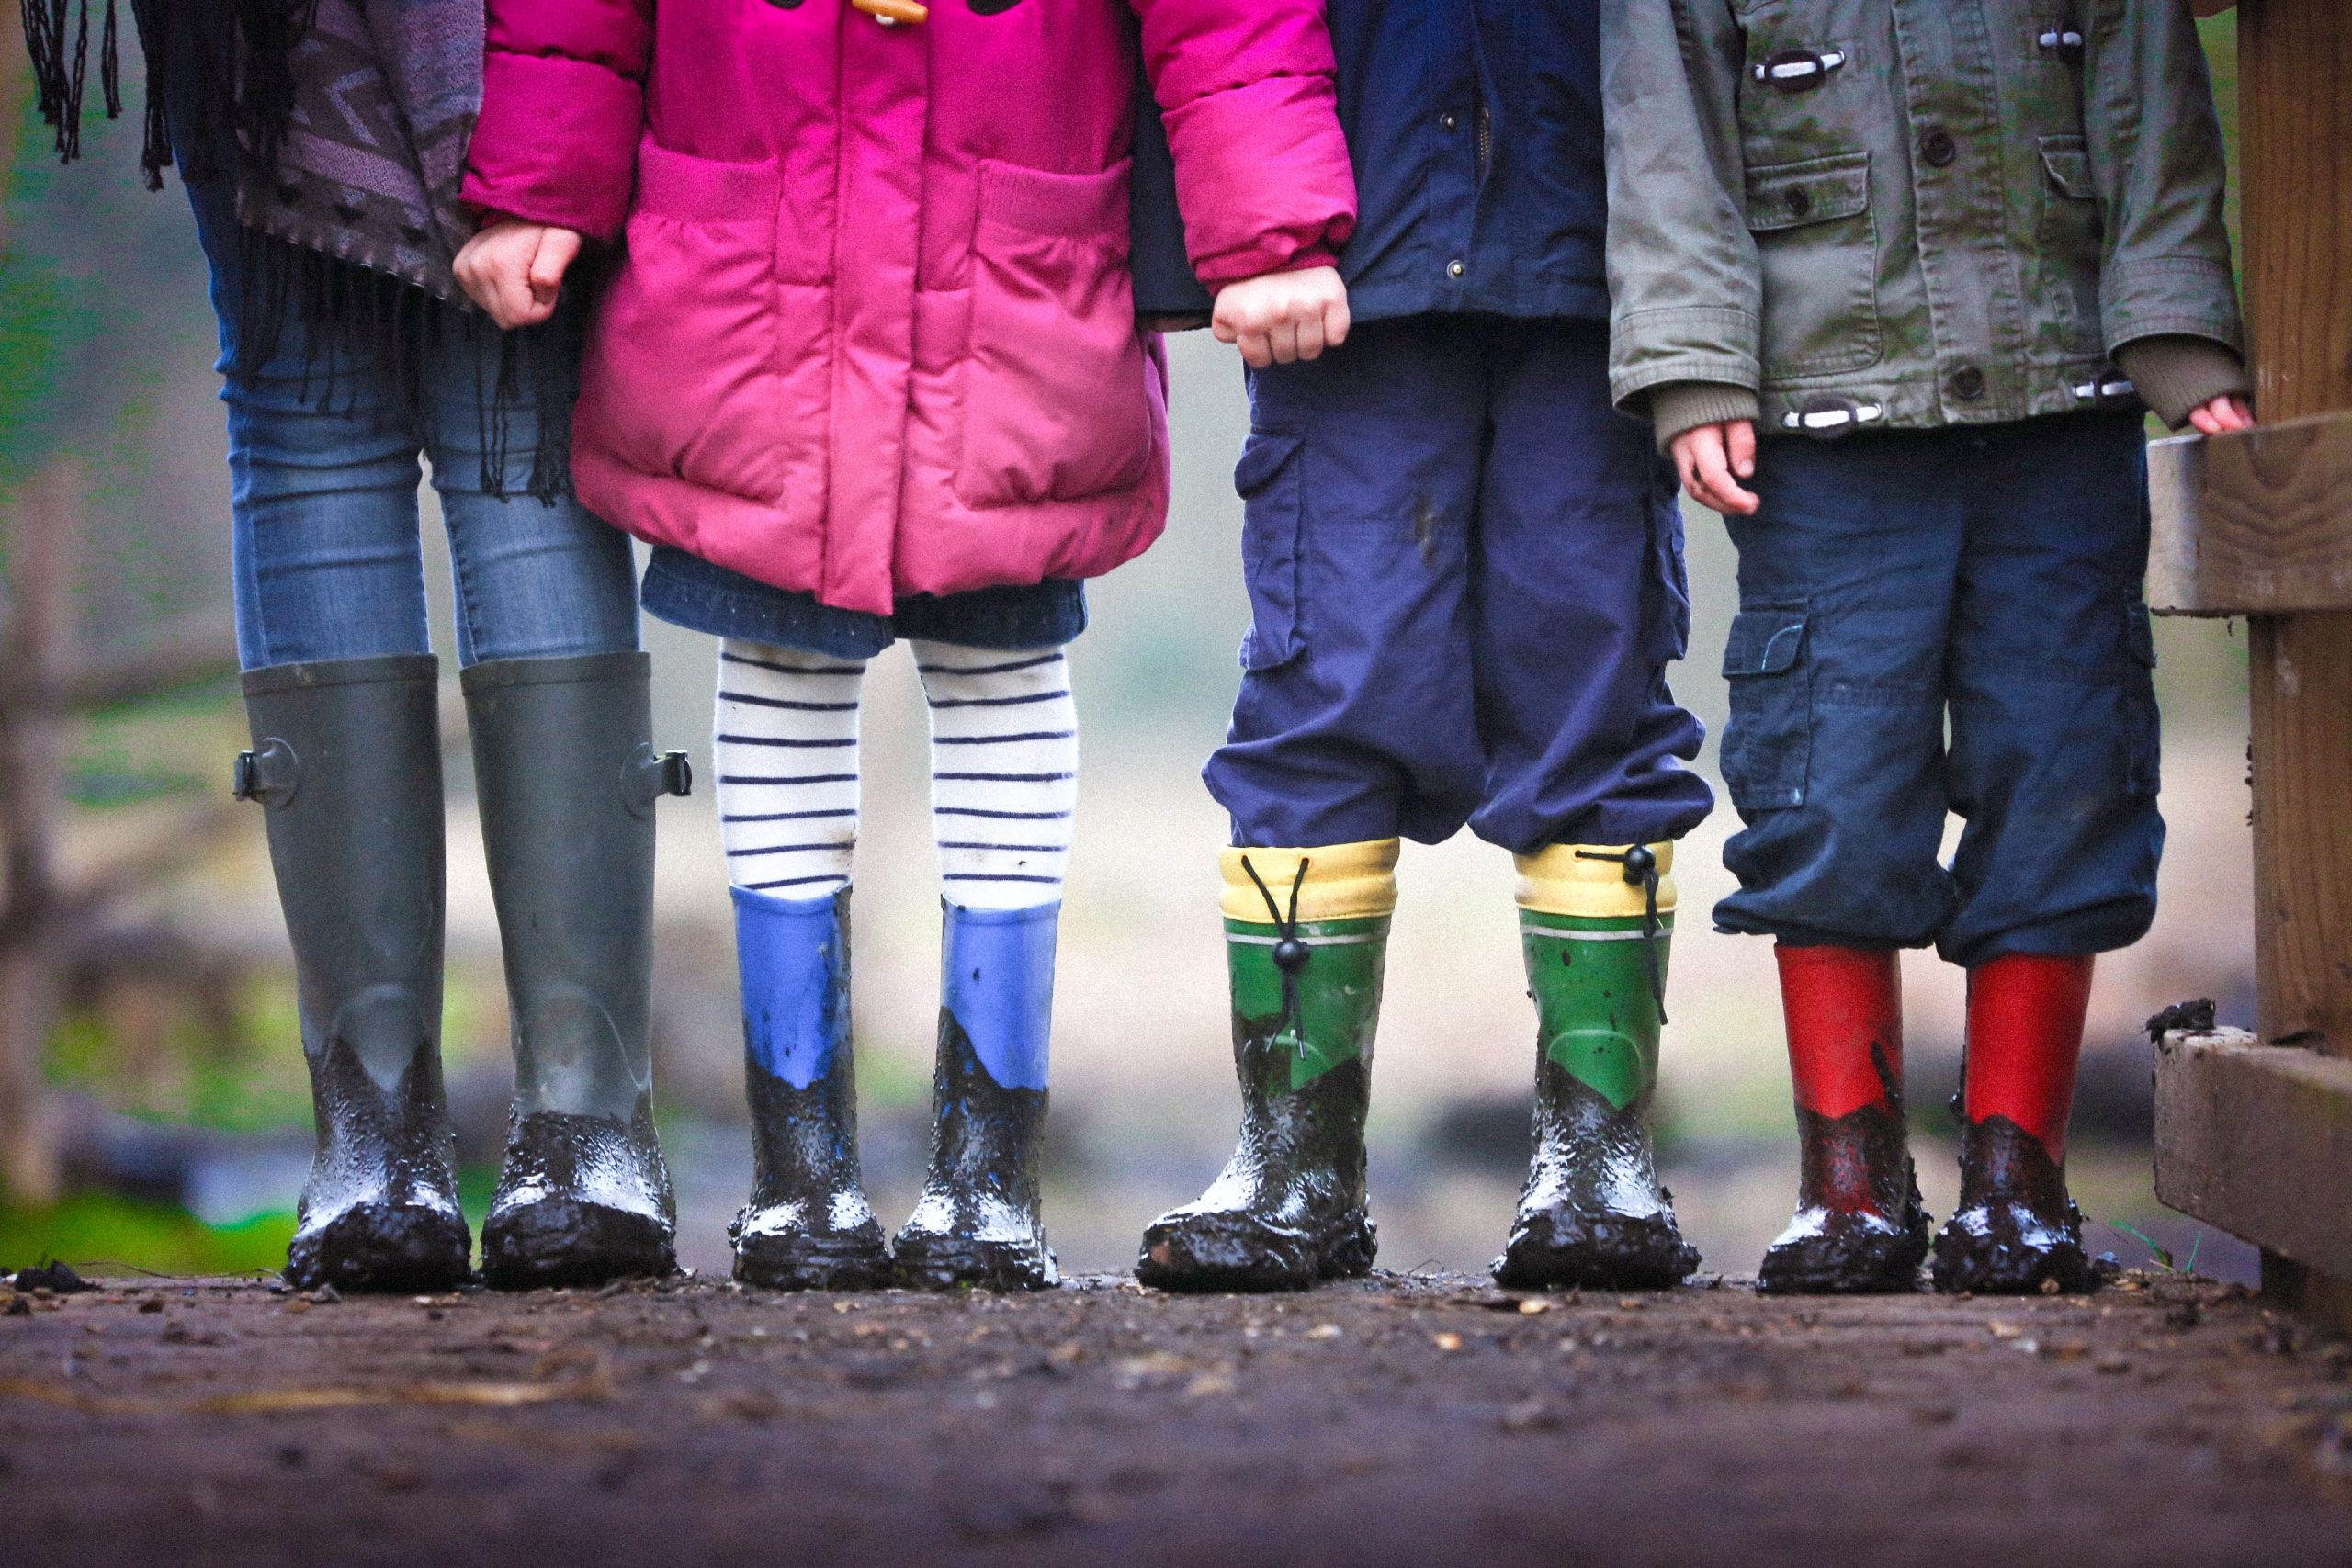 The image shows the legs of four children in a row, all wearing muddy welly boots.